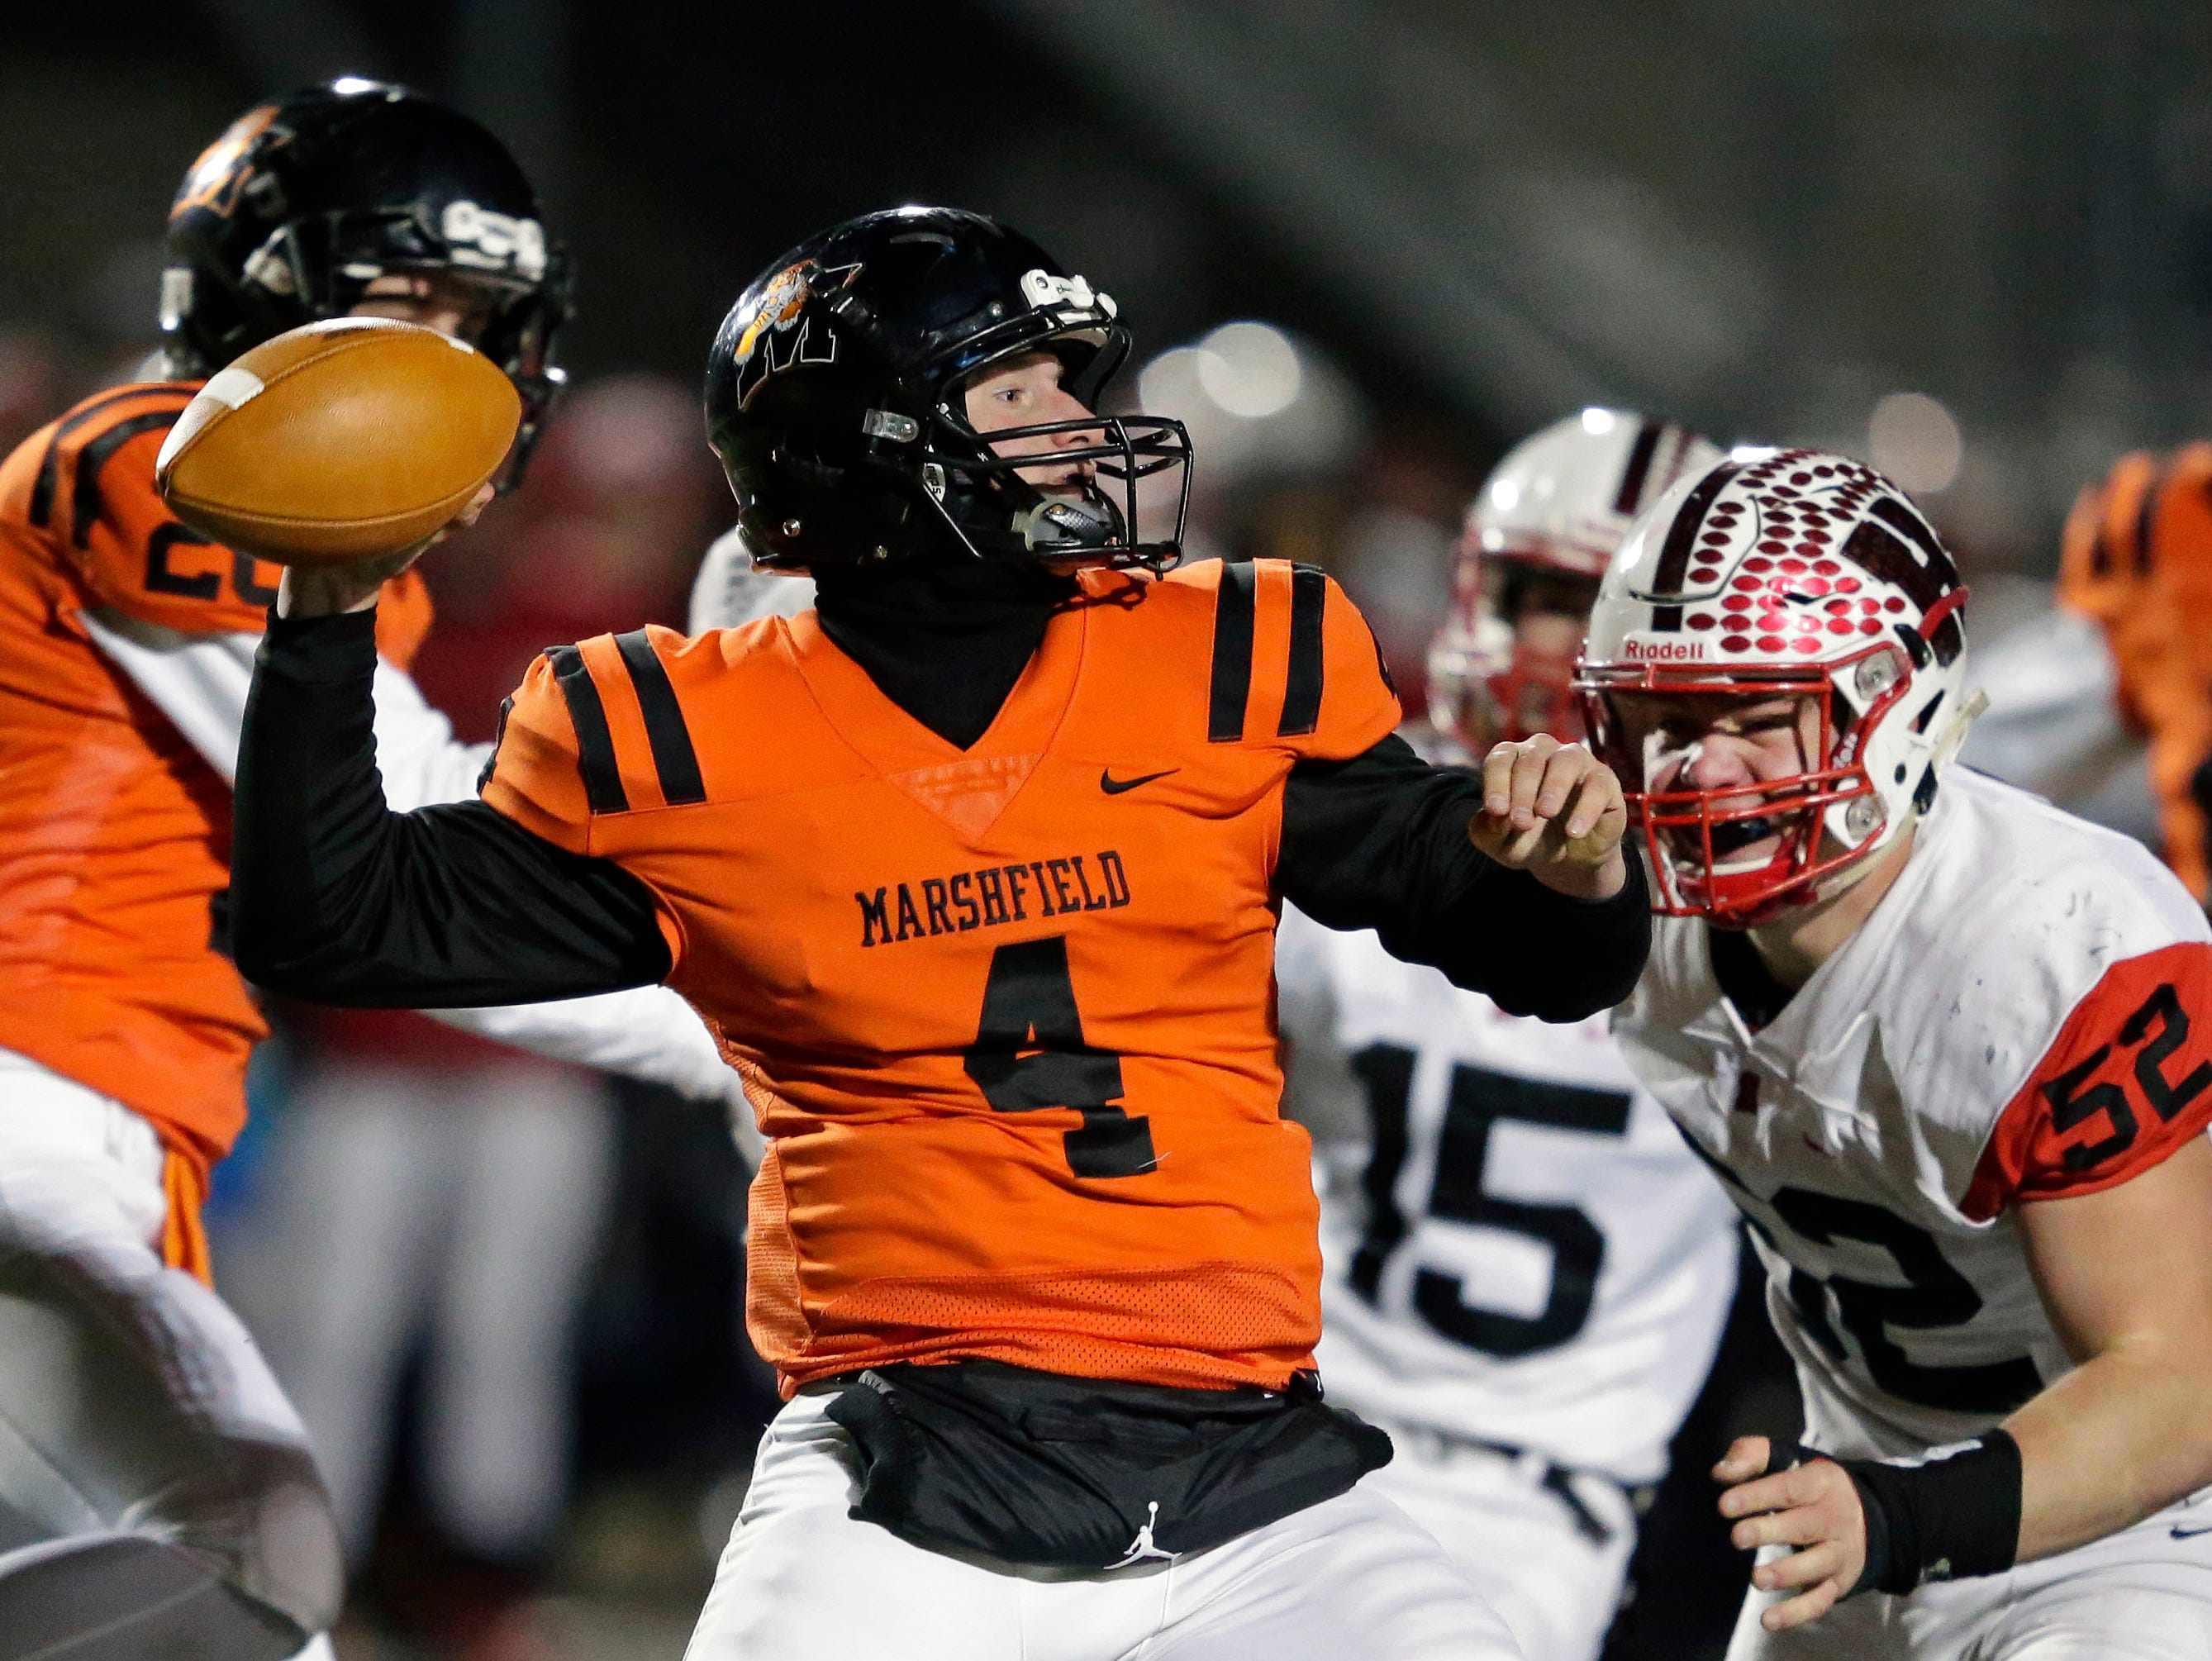 Quarterback Ryan Krueger of Marshfield passes against Homestead in a WIAA Division 2 state semifinal football game Friday, November 9, 2018, at Calder Stadium in Menasha, Wis.Ron Page/USA TODAY NETWORK-Wisconsin